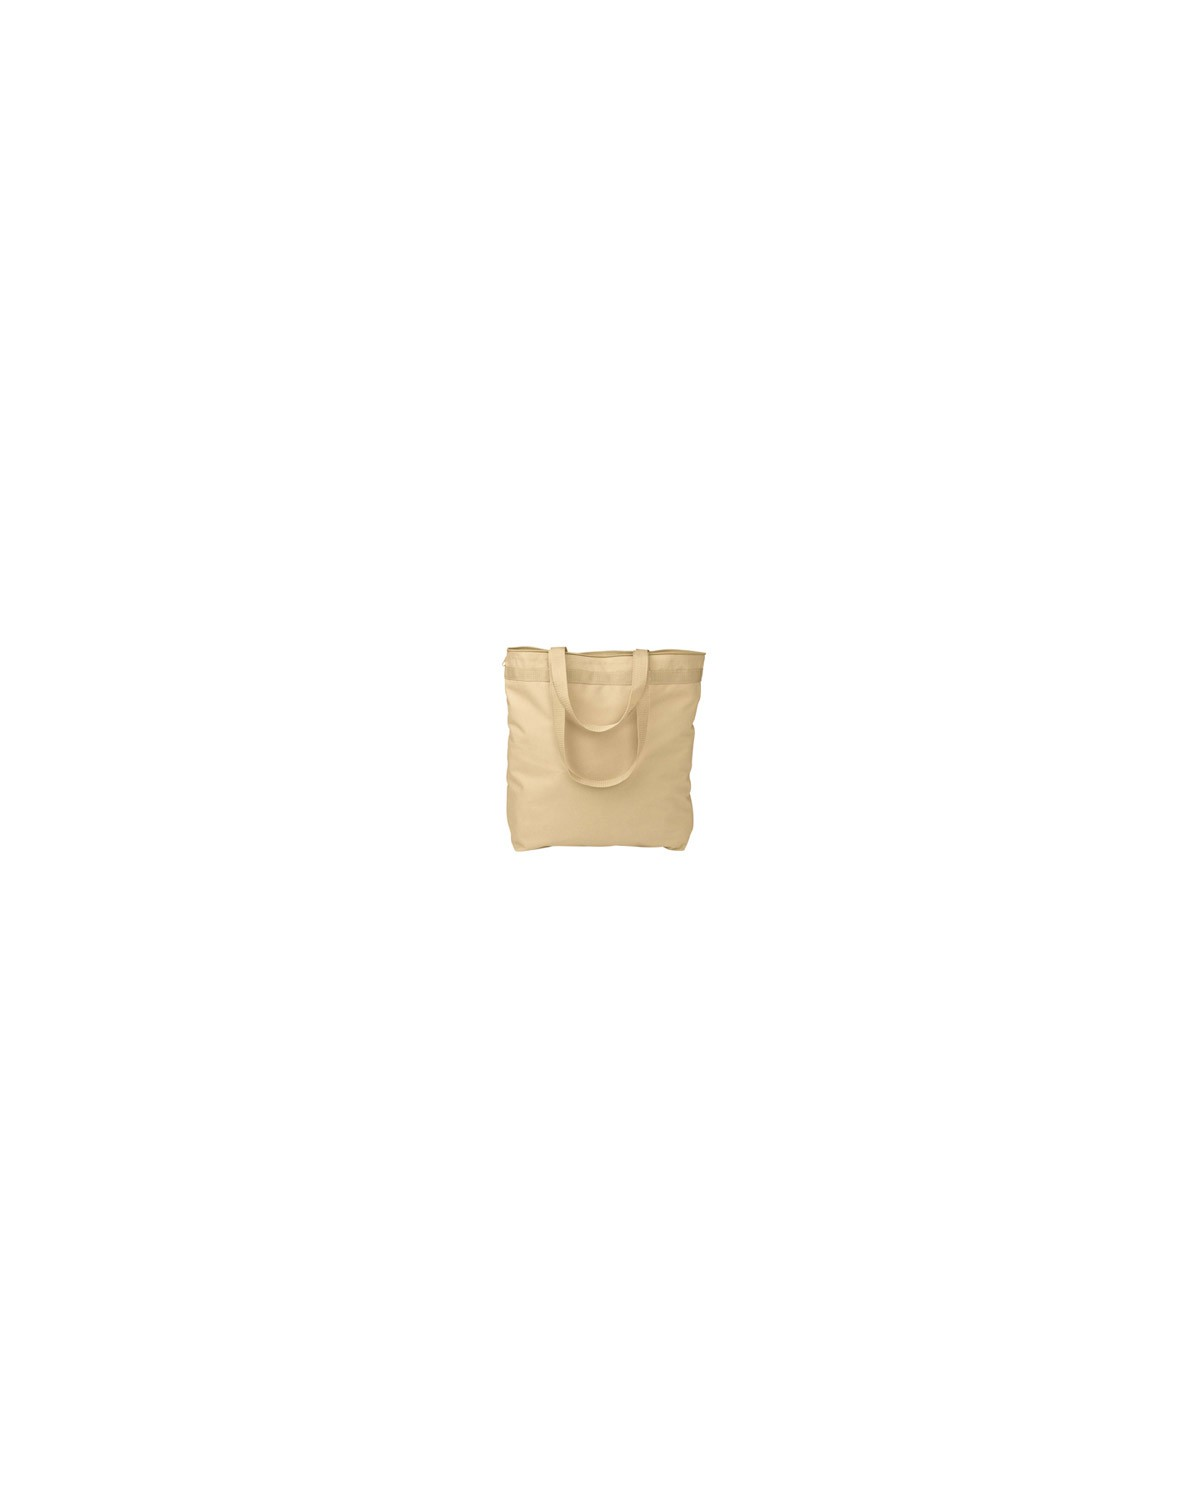 8802 Liberty Bags LIGHT TAN